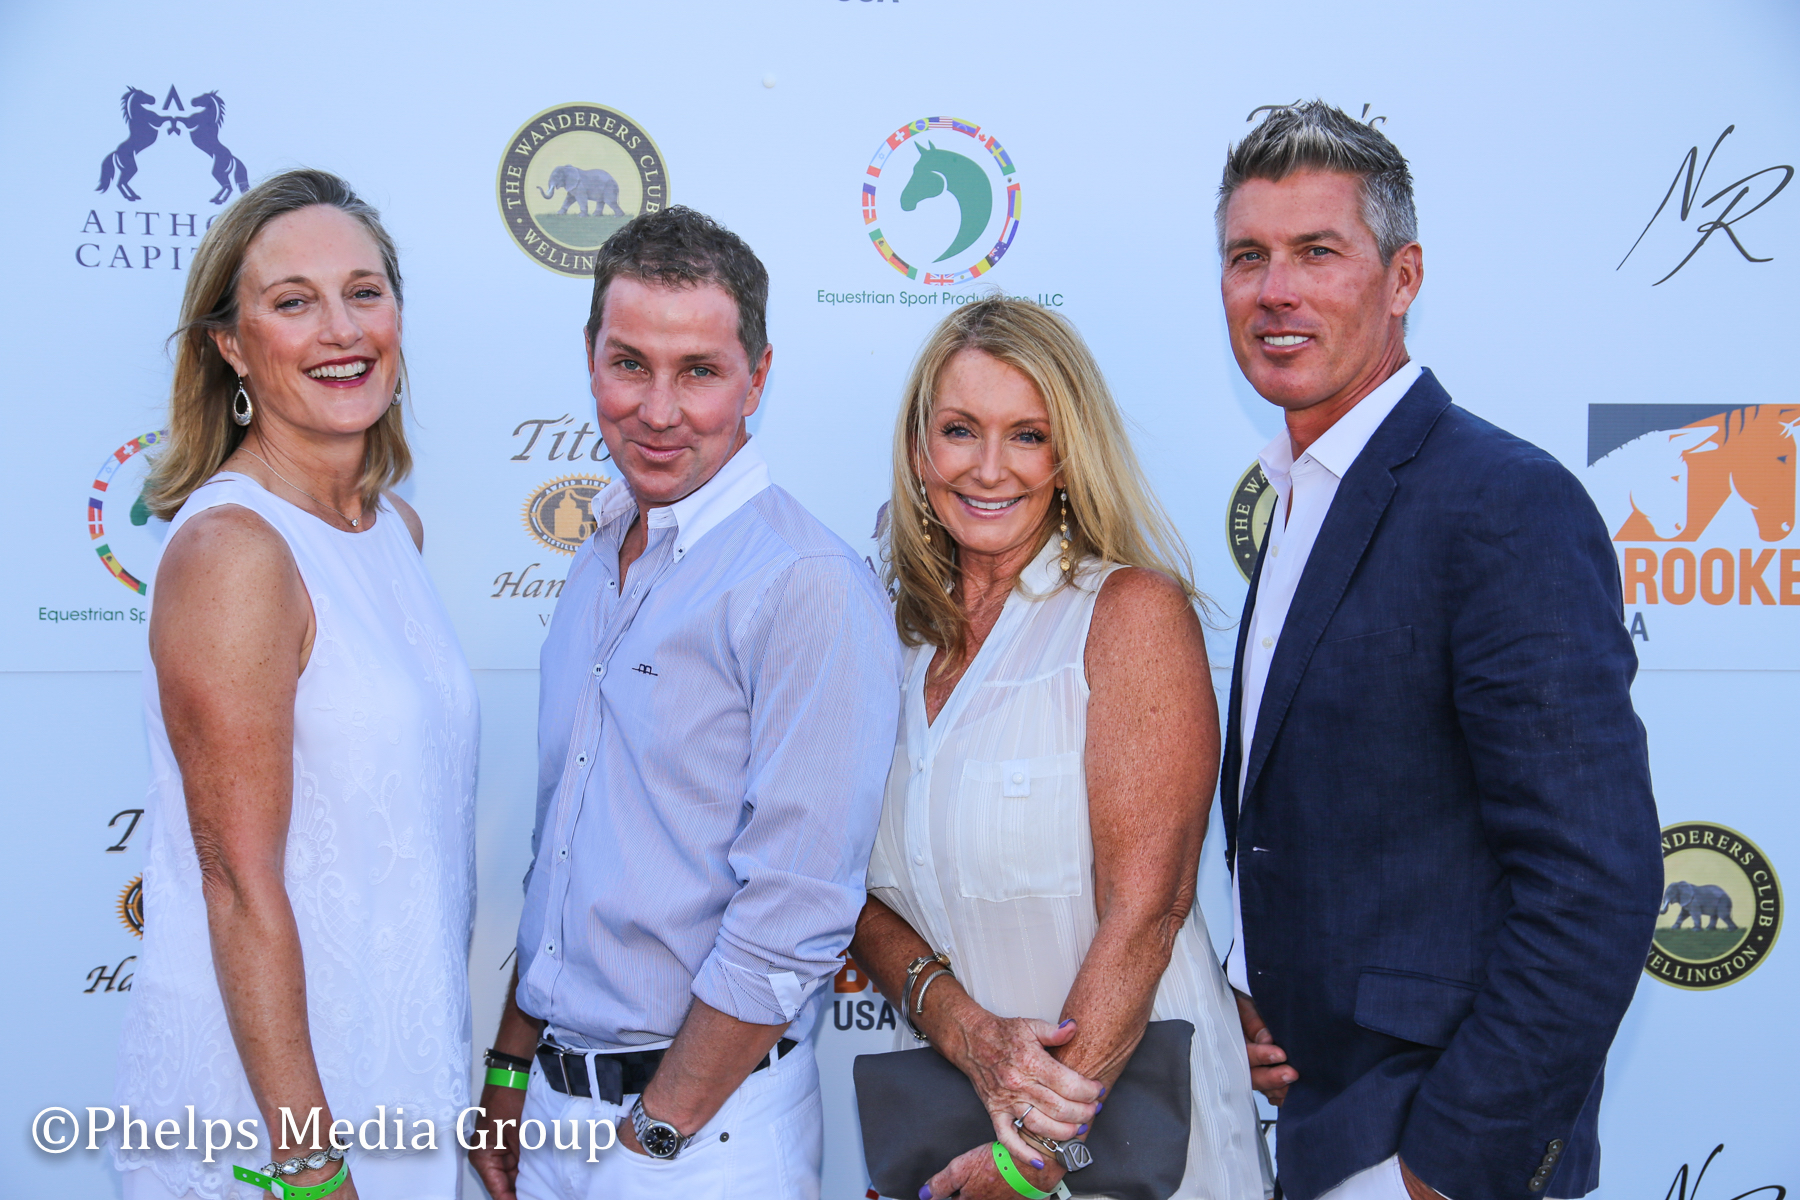 Angela Winston and David Belford, Chris Payne, Jackie Ryall; Nic Roldan's 2nd Annual Sunset Polo & White Party, FL, by Phelps Media.jpg